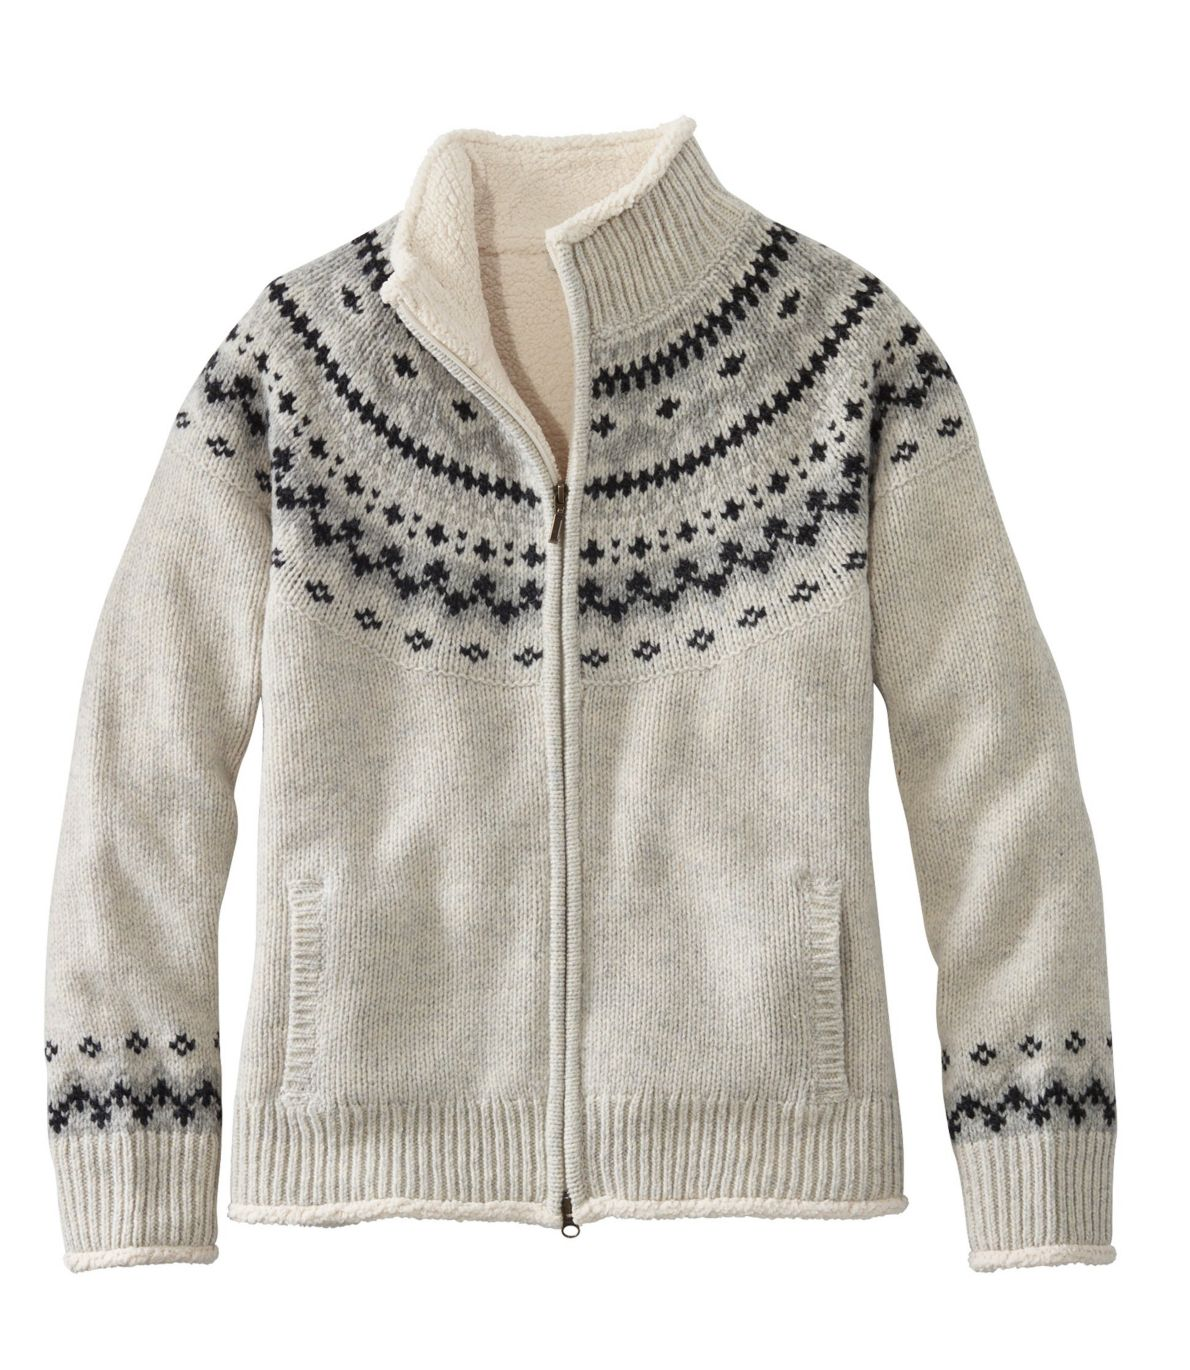 Women's L.L.Bean Classic Ragg Wool Sweater, Sherpa-Lined Zip Cardigan Fair Isle